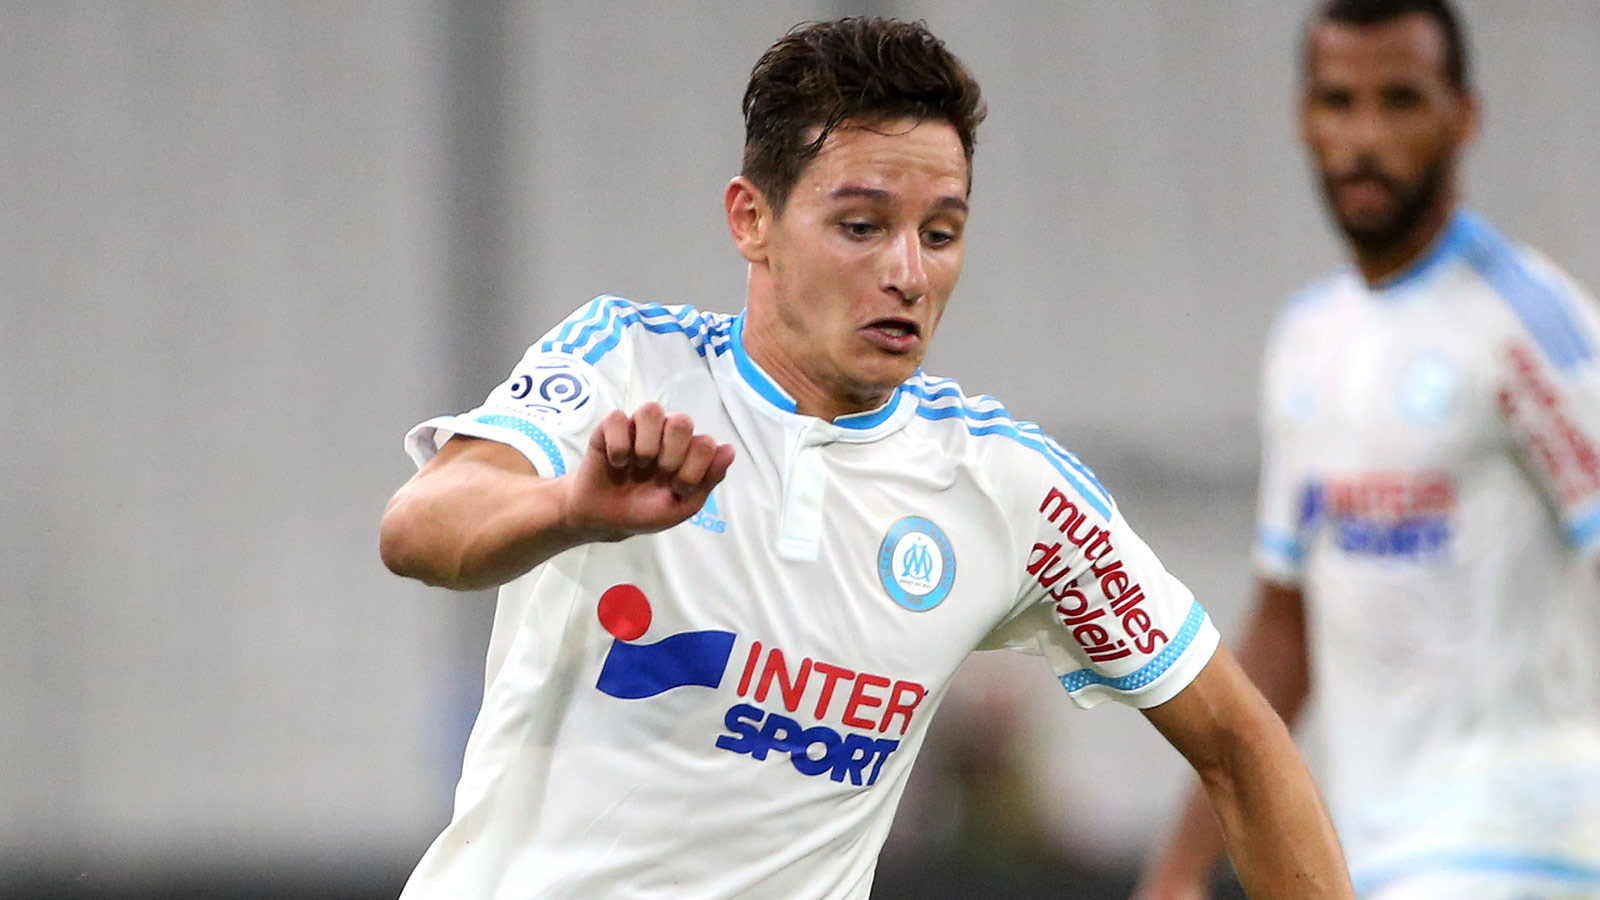 Marseille winger Thauvin set for medical ahead of Newcastle move